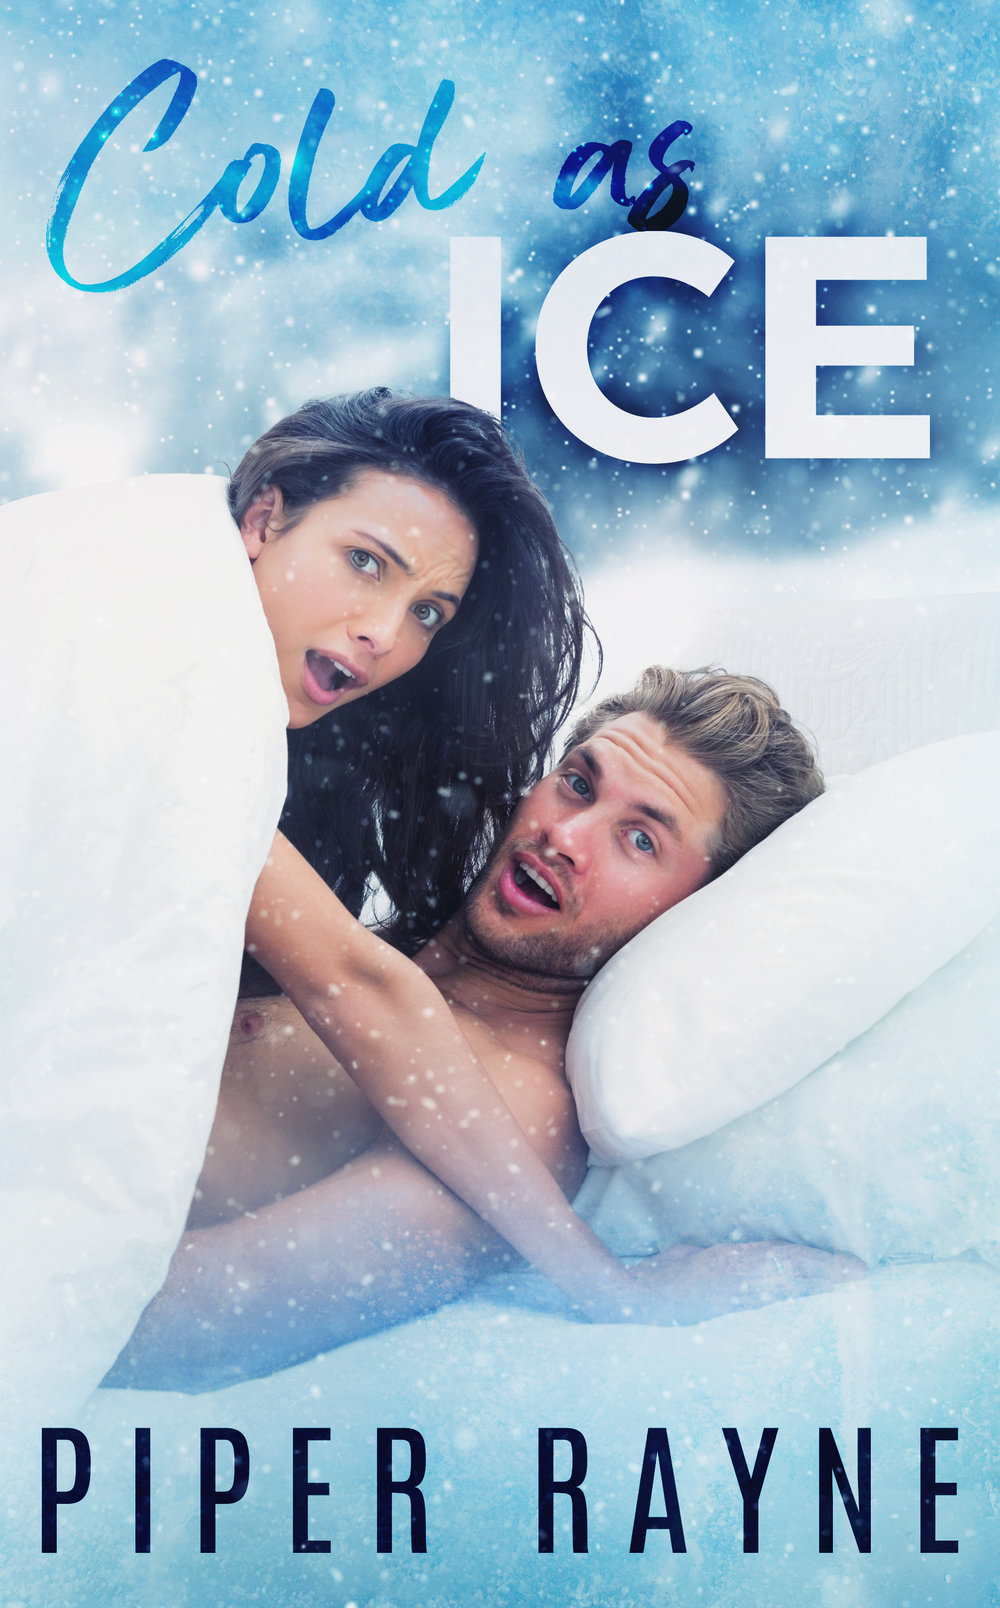 Cold As Ice, the first in an all-new romantic series of standalones from bestselling authors Piper Rayne is LIVE!     It may be Winter Games, but the bedroom games are about to begin…    Competing in South Korea on the world stage is hard enough.    Having to spend the entire press tour beforehand with a woman who hates me?     Karma really is a bitch.    While she's spent the last four years loathing me, I've spent them ignoring the guilt that gnaws at my stomach.     All Mia Salter cares about is that I'm her brother's ex-best friend and it's her duty to hate me. The funny thing is, I barely noticed her back when she was trying to keep up with us on the slopes. Now, as both of us prepare to go for gold, I'm seeing her in a whole different light—and it involves a whole lotta different positions.     No one said the path to the Olympics would be easy.